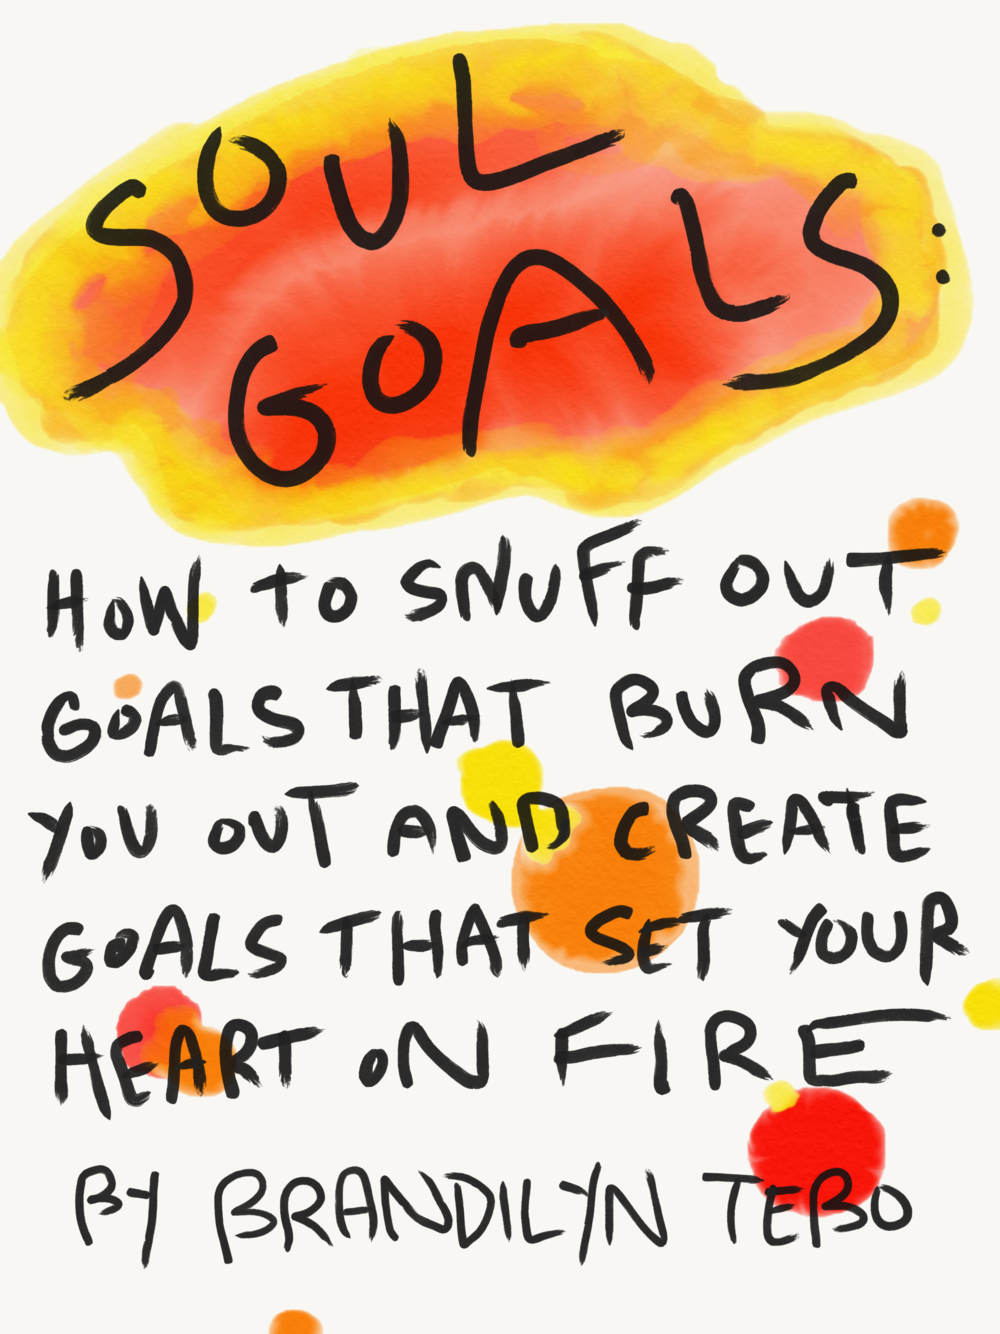 Soul Goals cover.png